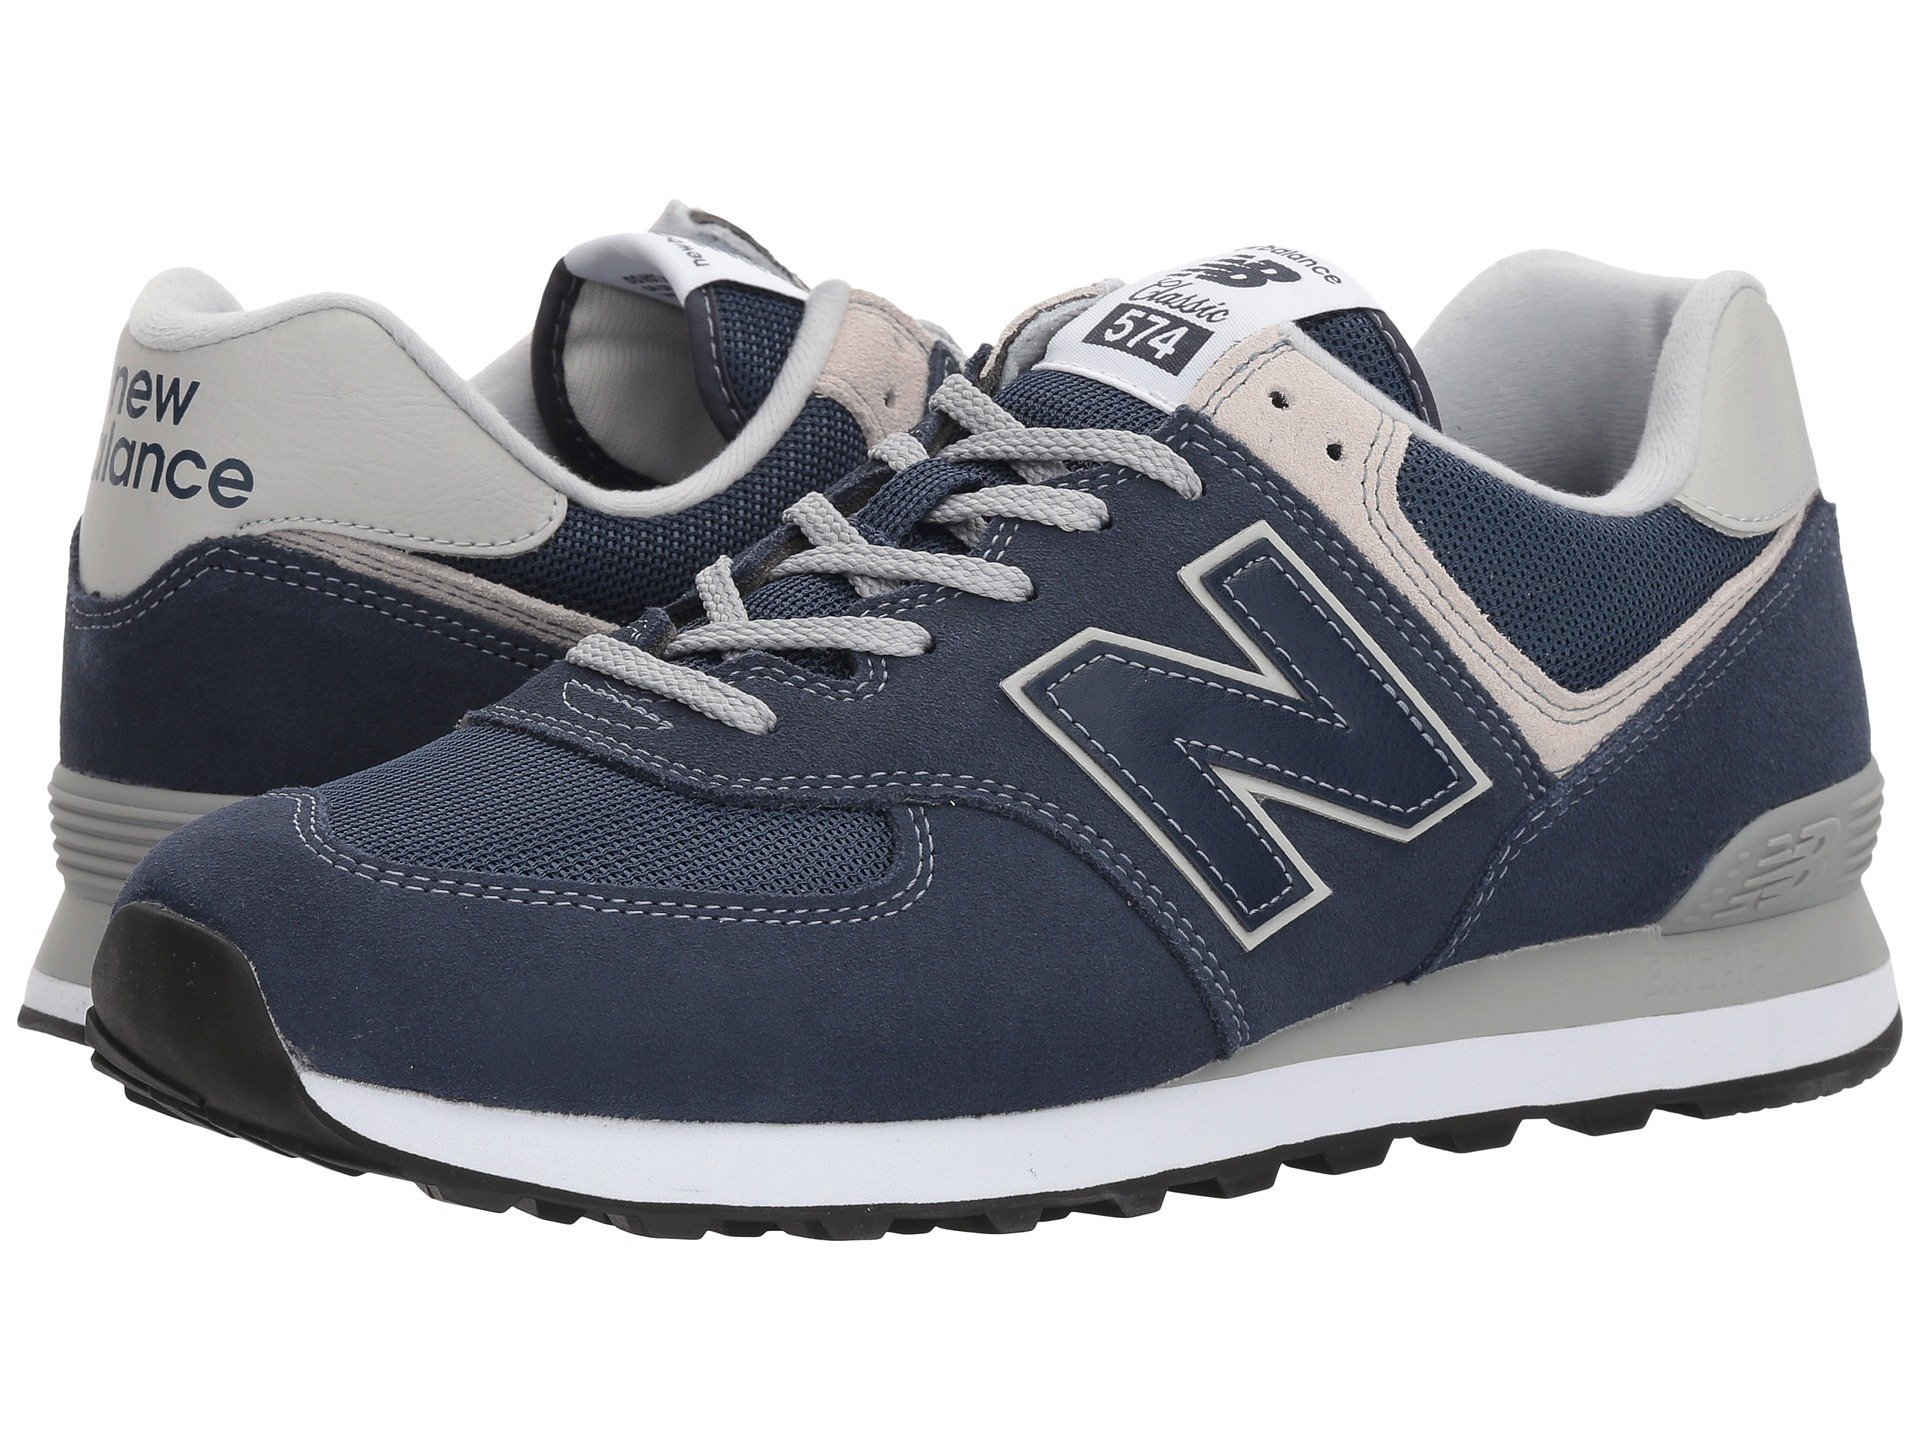 ac2b936fb63 Men's New Balance Classics Lifestyle Sneakers + FREE SHIPPING | Shoes